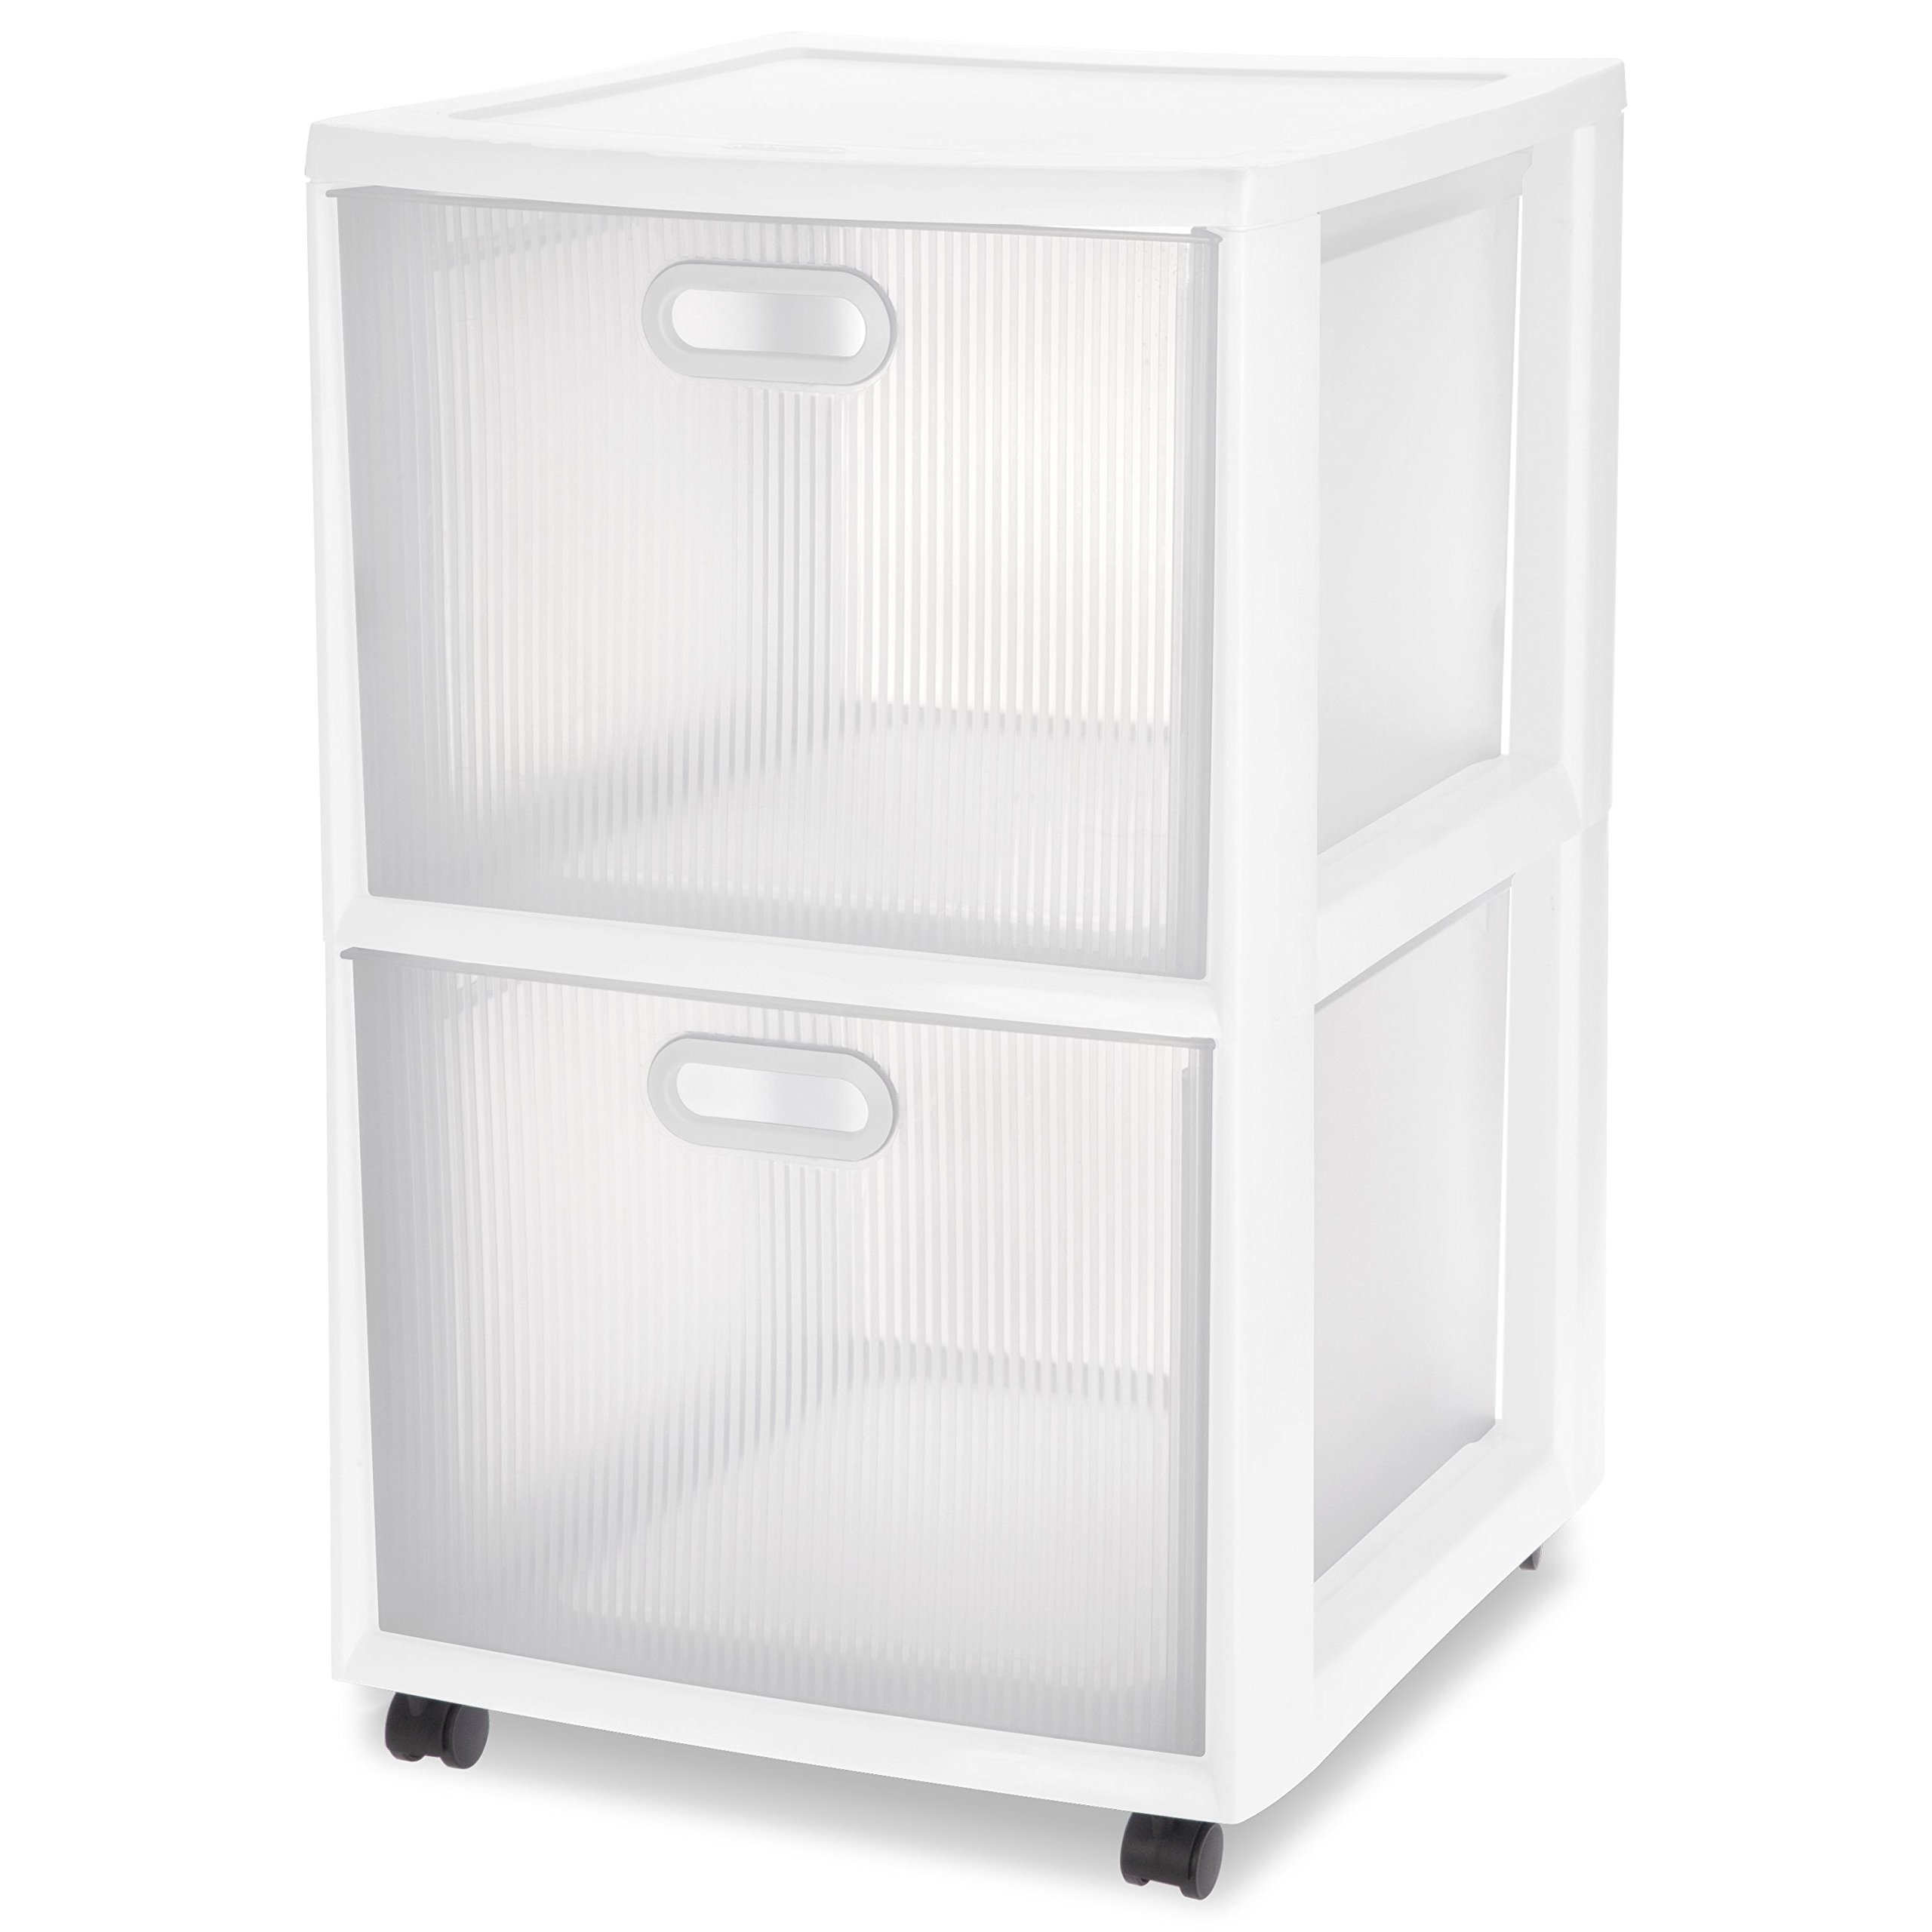 Sterilite 36208002 Ultra 2 Drawer Cart, White Frame & Clear Textured Drawers w/ Handles &  Black Casters, 2-Pack by STERILITE (Image #2)